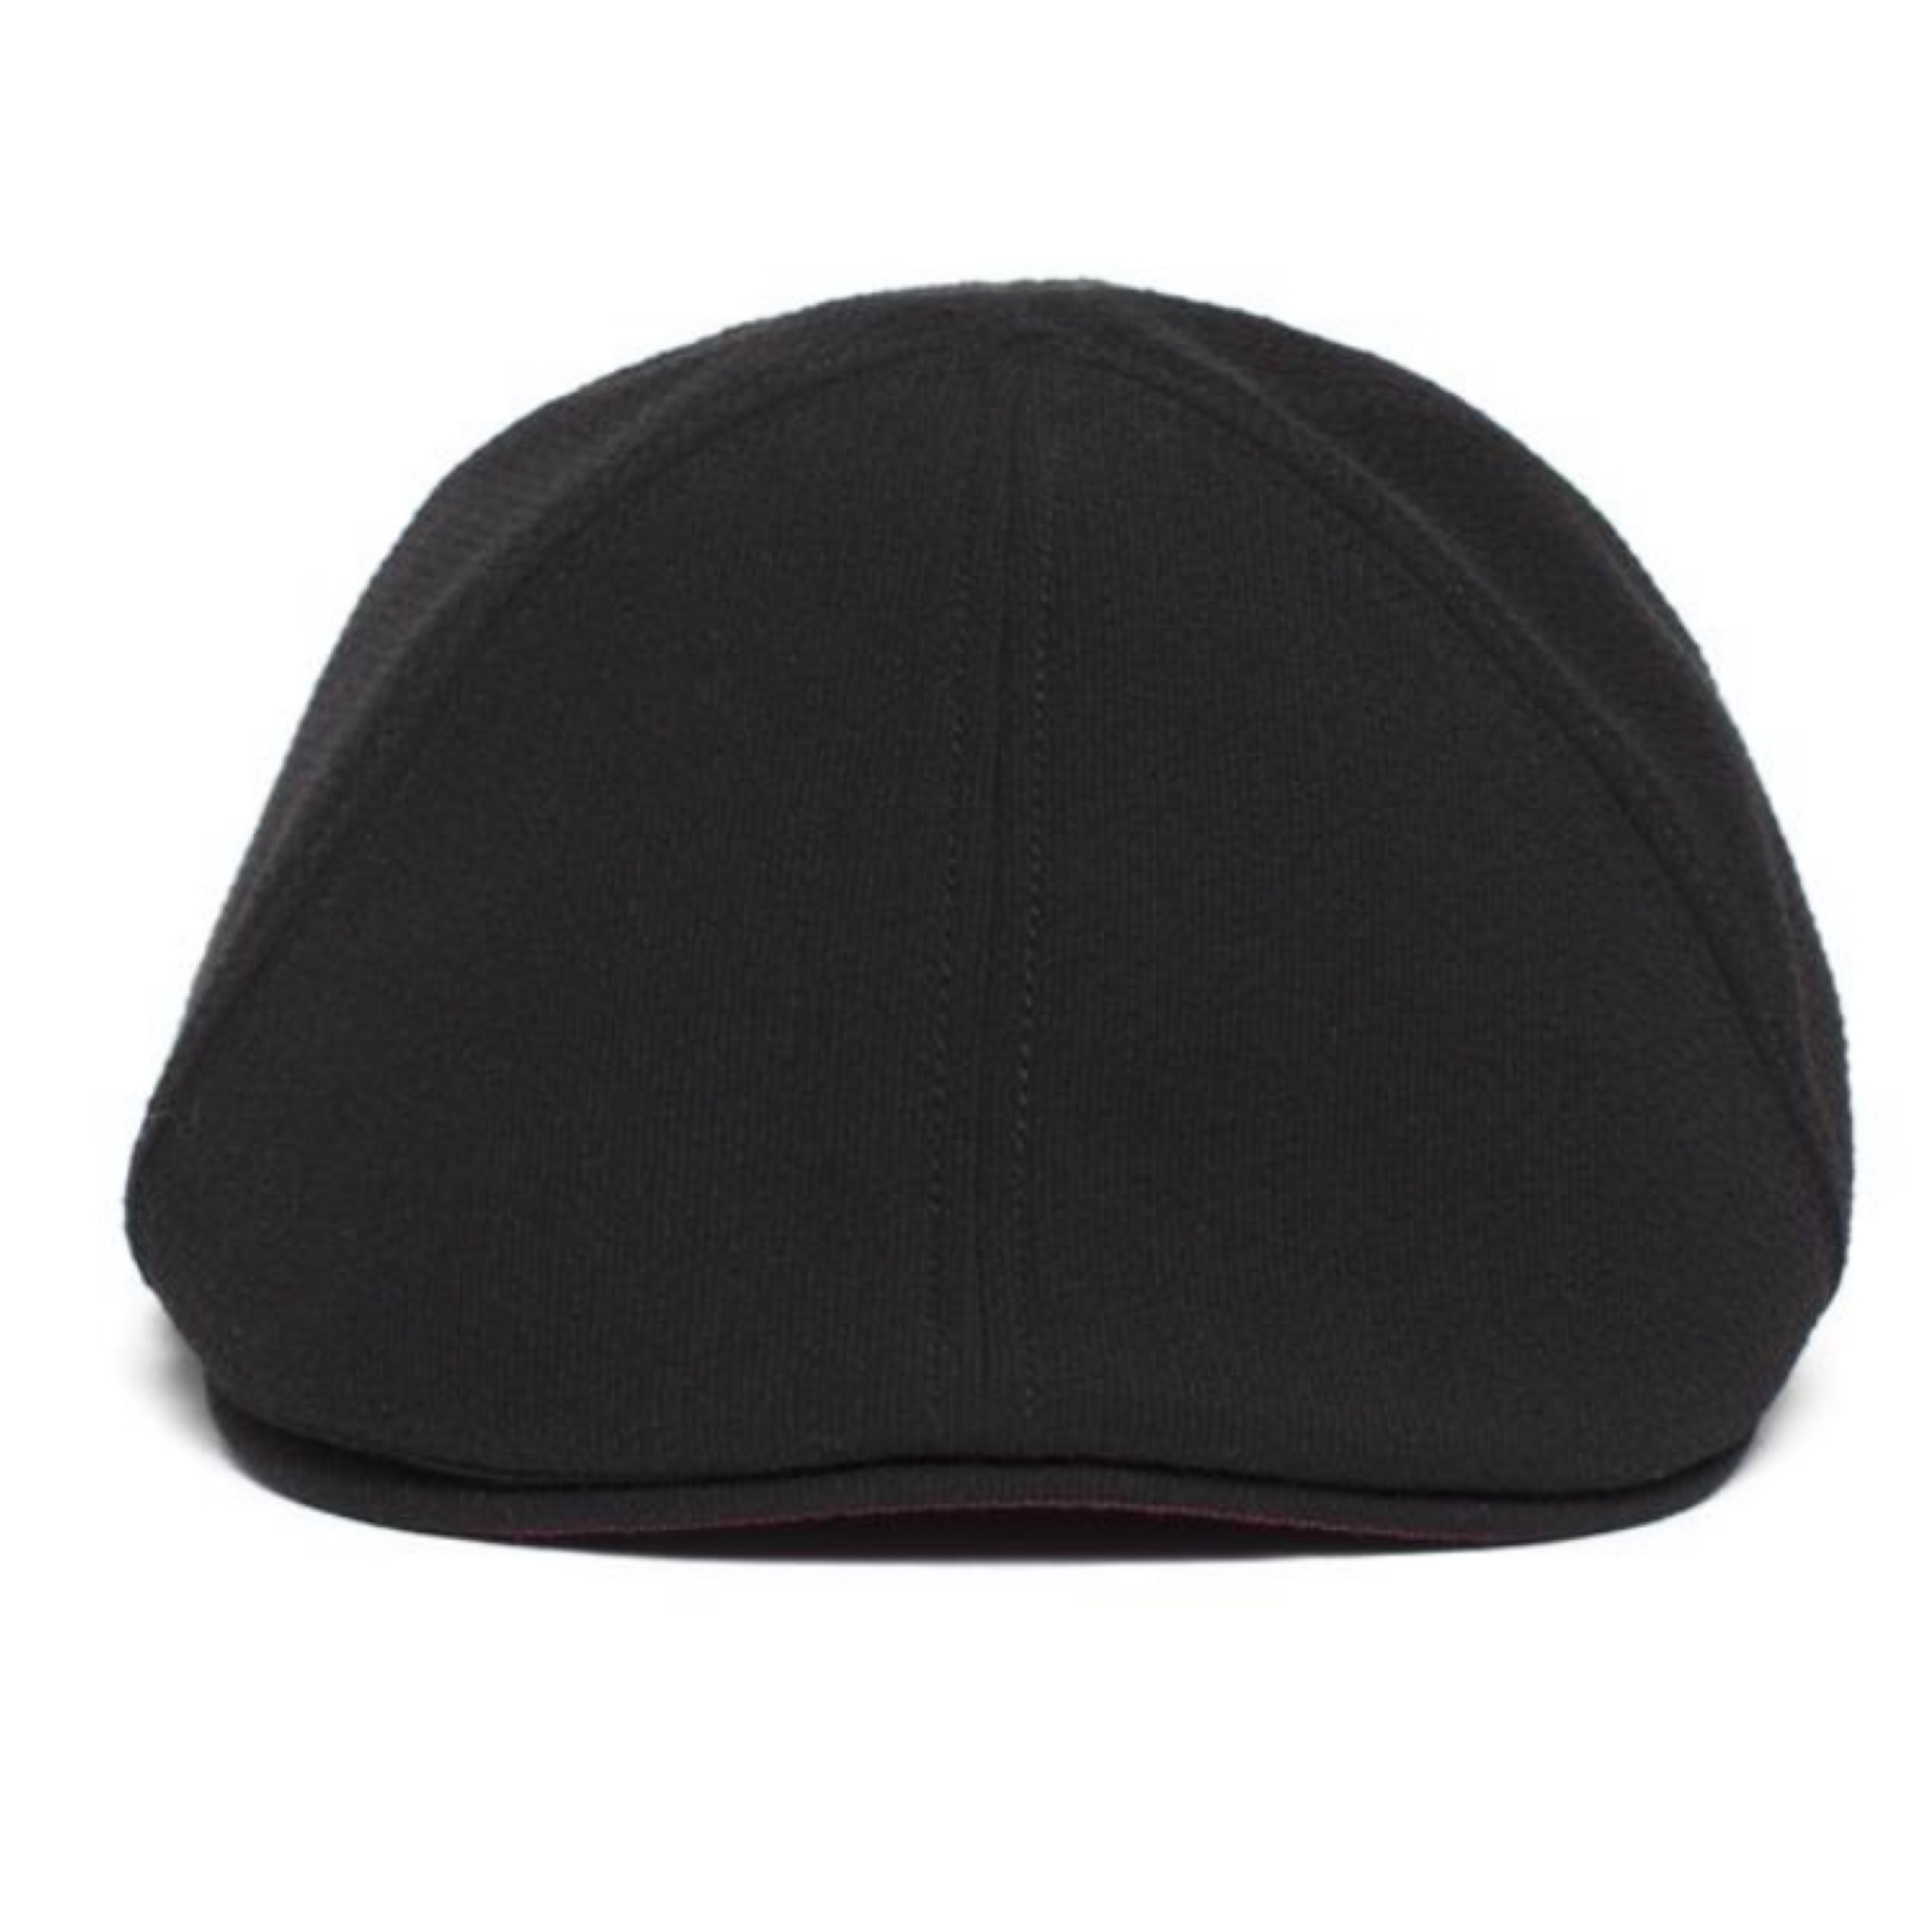 Dr-Tumbletys-Apothecary-inspired-by-spirits-distilling-company-Pittsburgh-goorin-bros-hat-newsboy-flat-cap-flatcap-black-wool-slow-down-driving-cabbie-paperboy